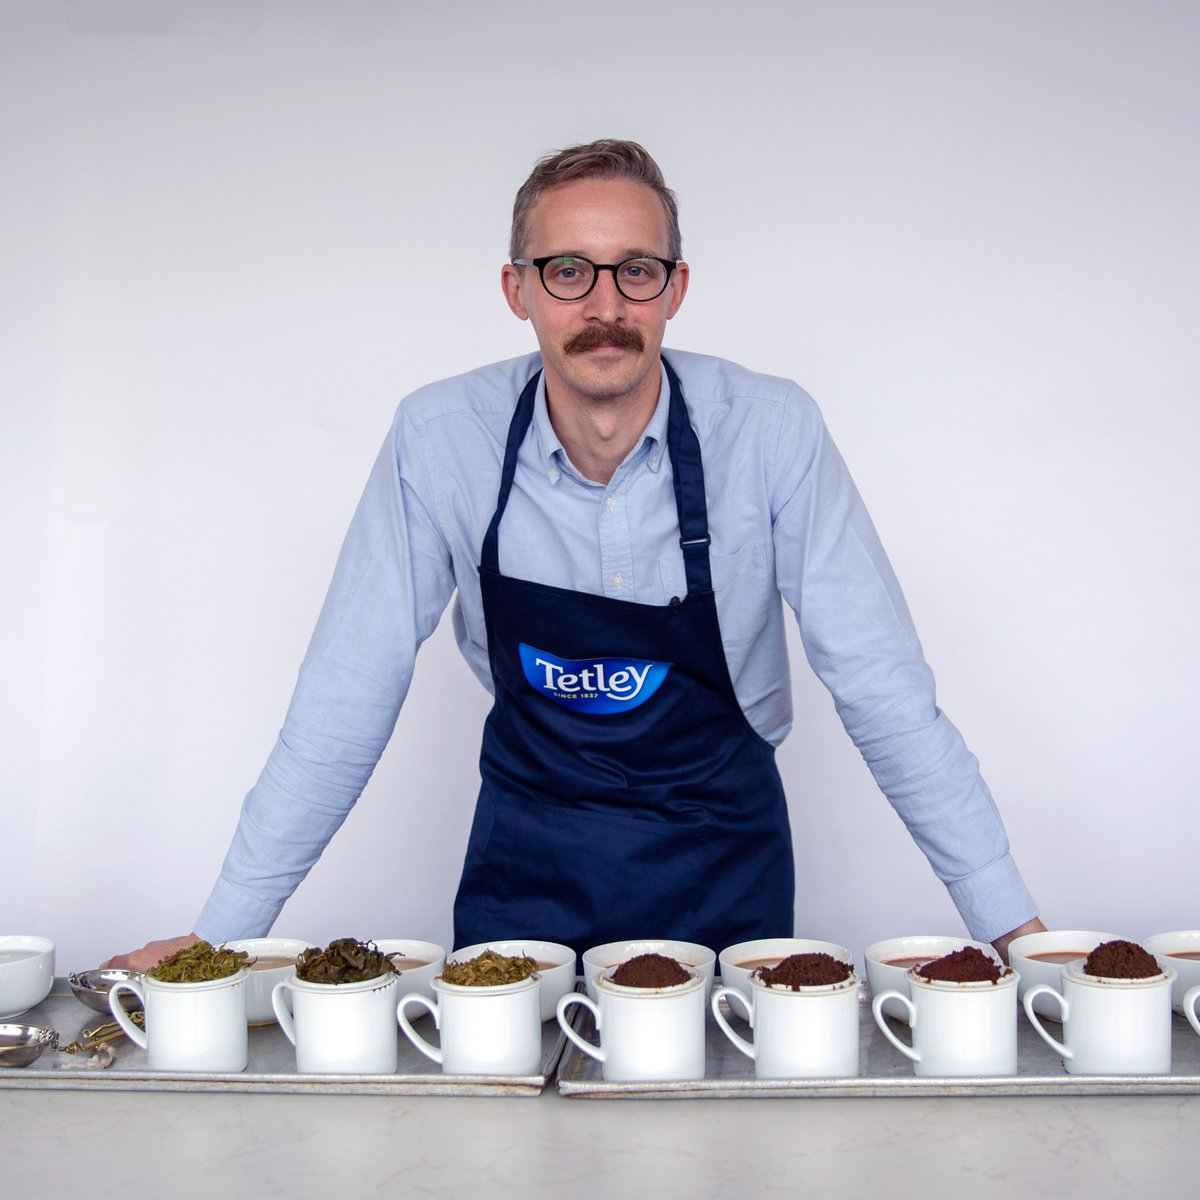 Put the kettle on, make yourself comfortable and meet our Master Blender, Sebastian Michaelis, as he tells us what it takes to create Tetley's world-famous blend of tea. Listen here: https://www.bbc.co.uk/sounds/play/w3cswpng …